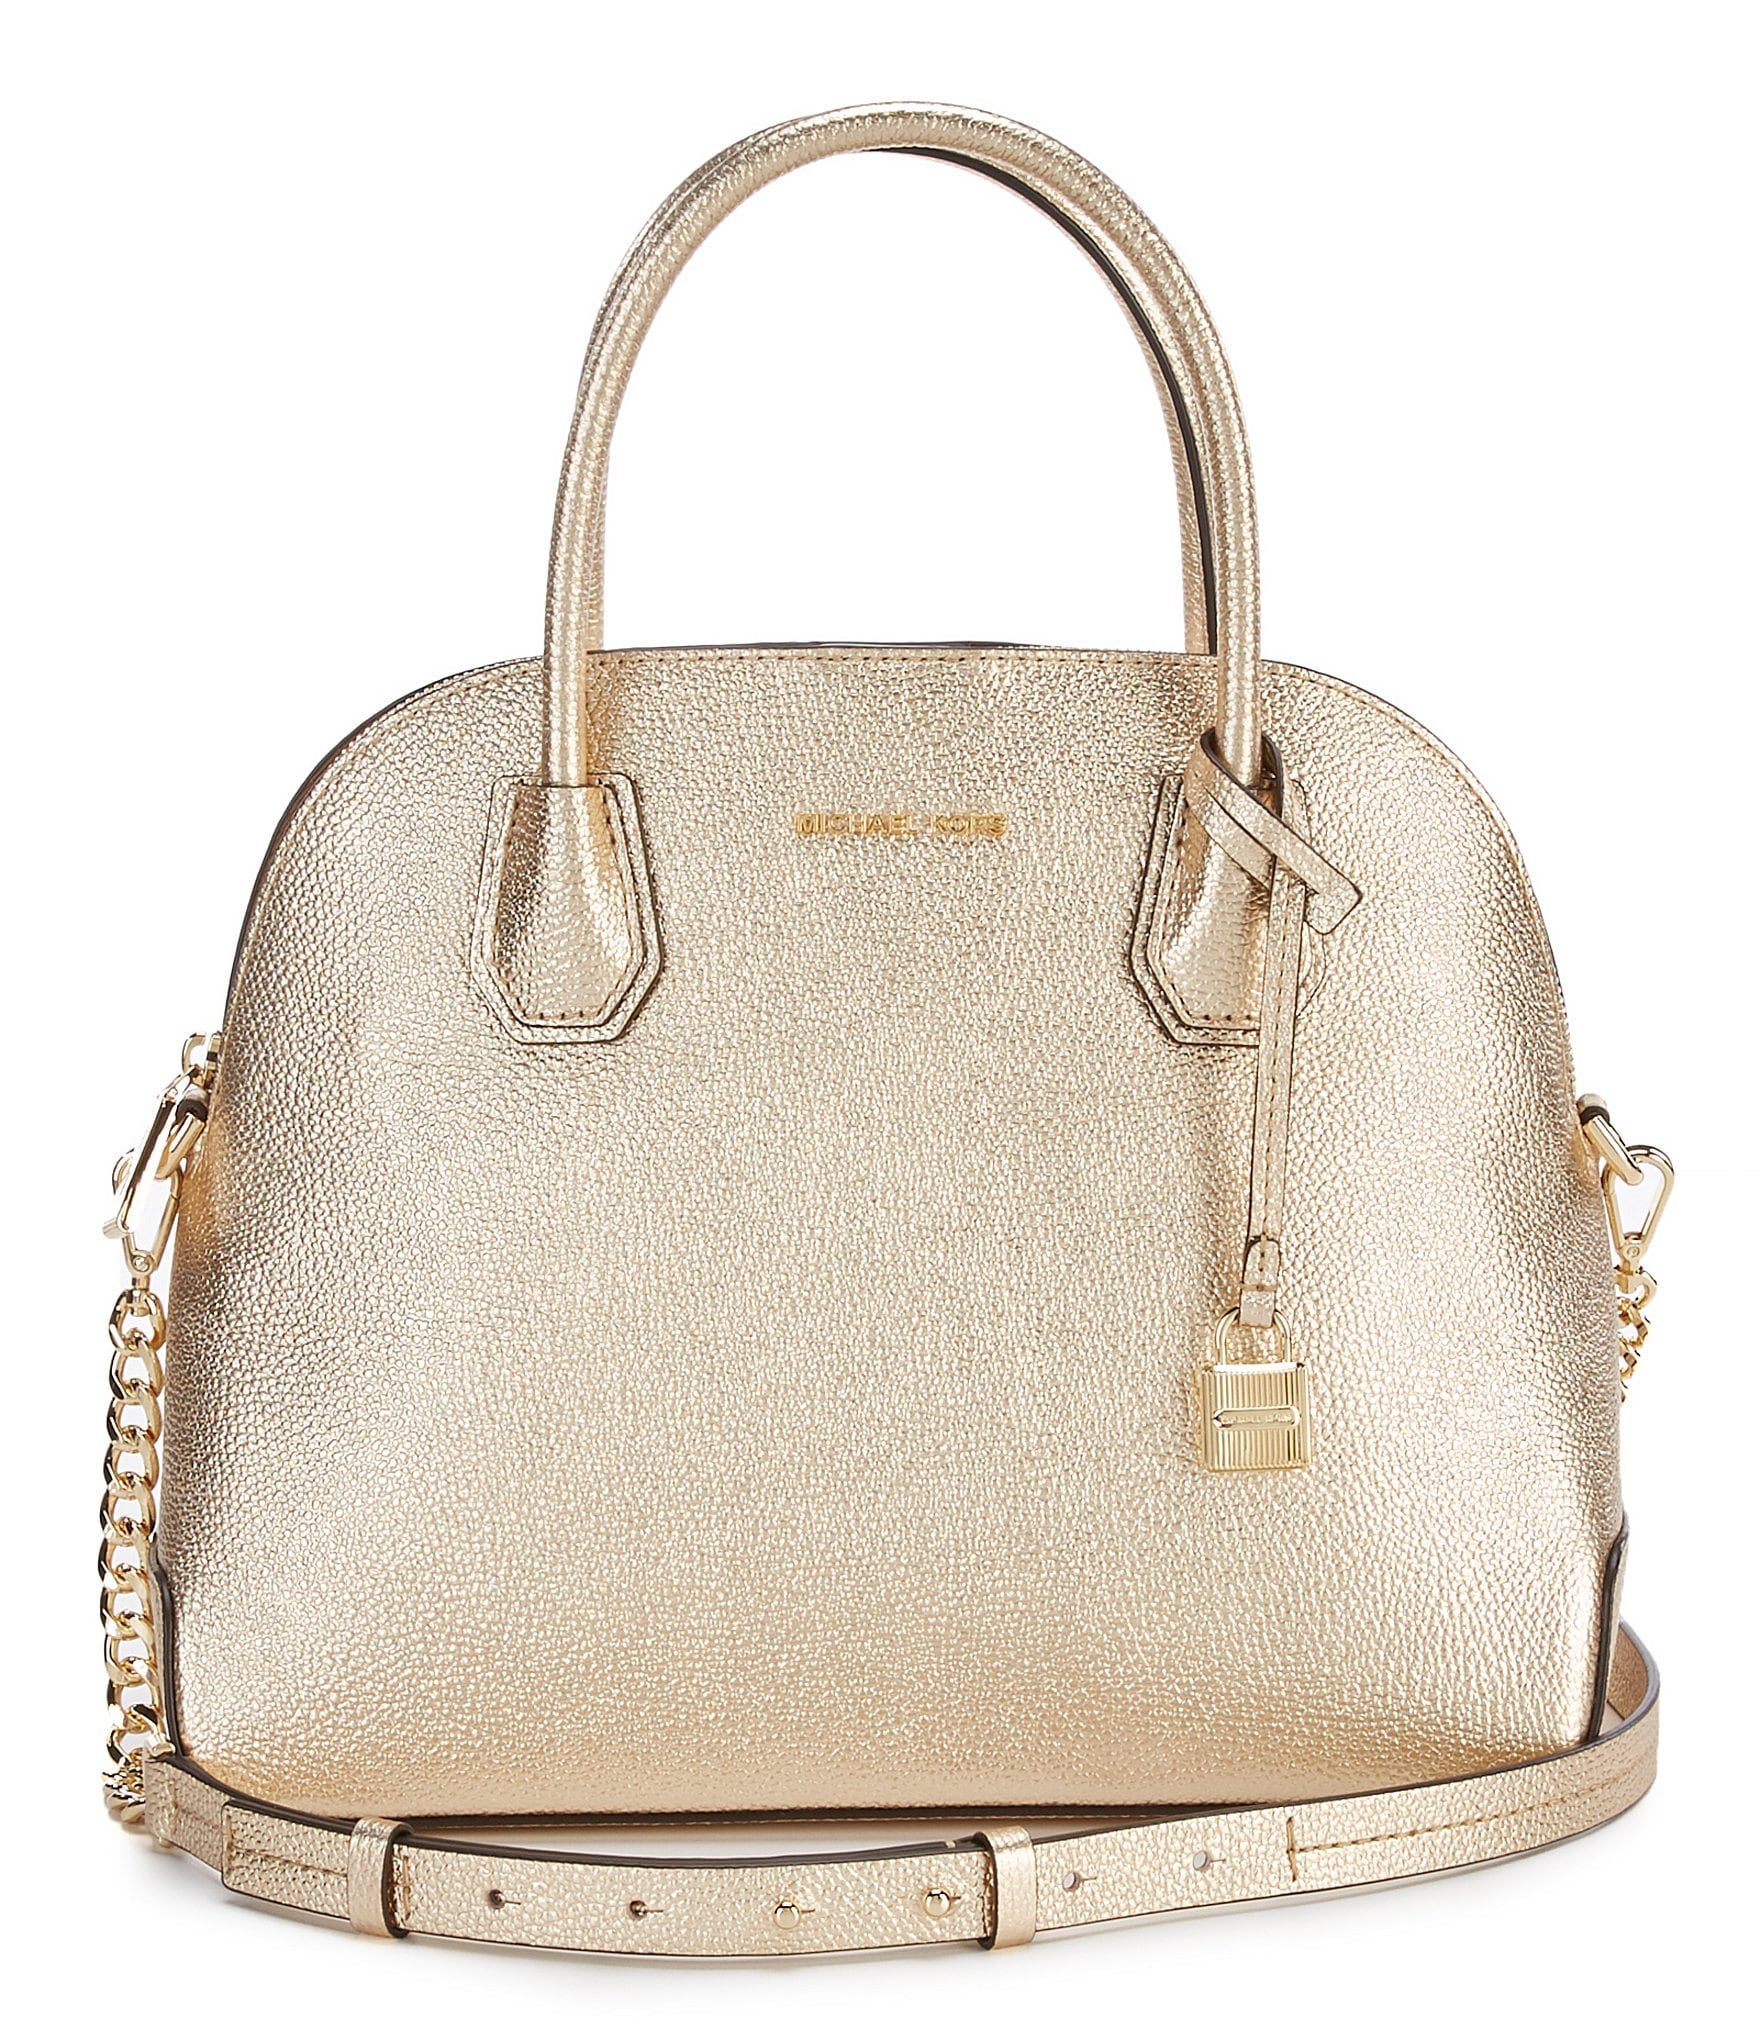 Michael Kors Factory Outlet Online in USA!